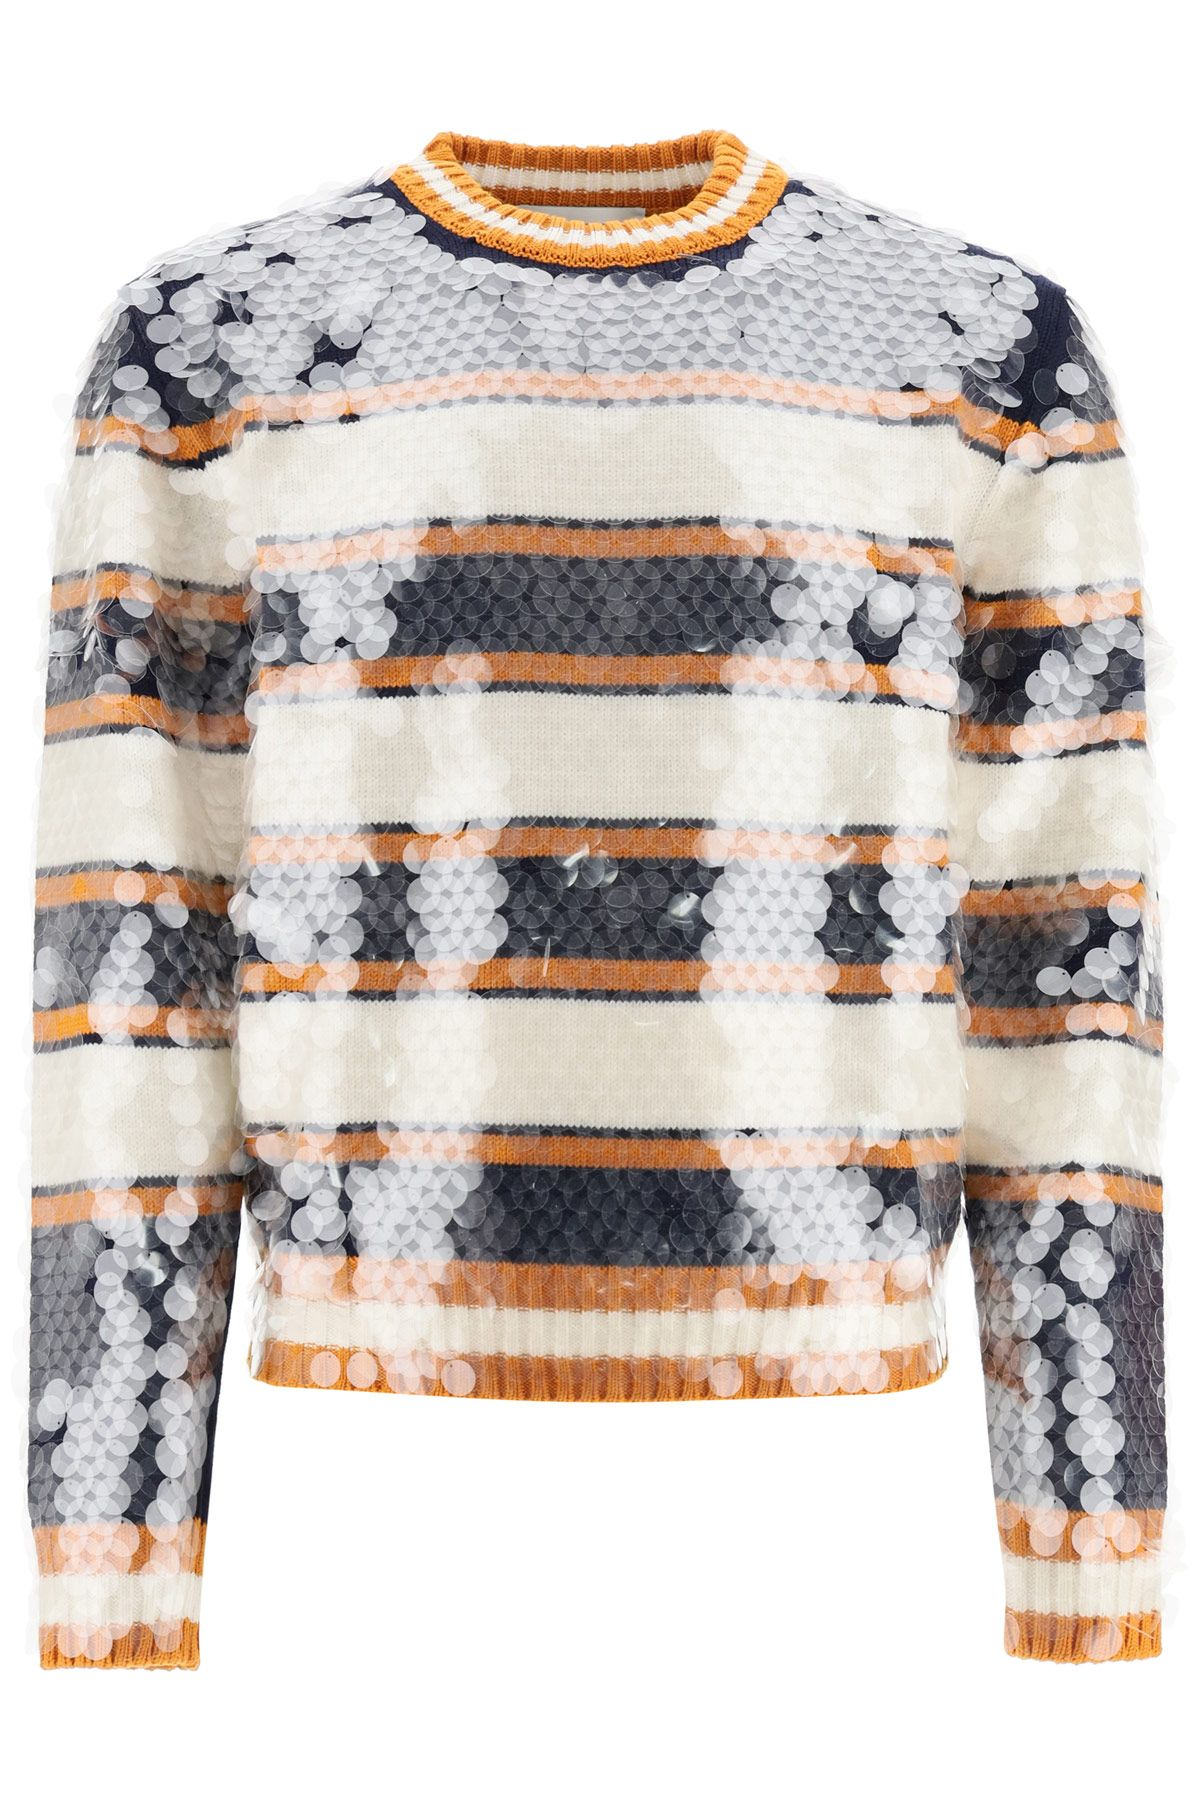 lanvin clothing men striped sweater with sequins